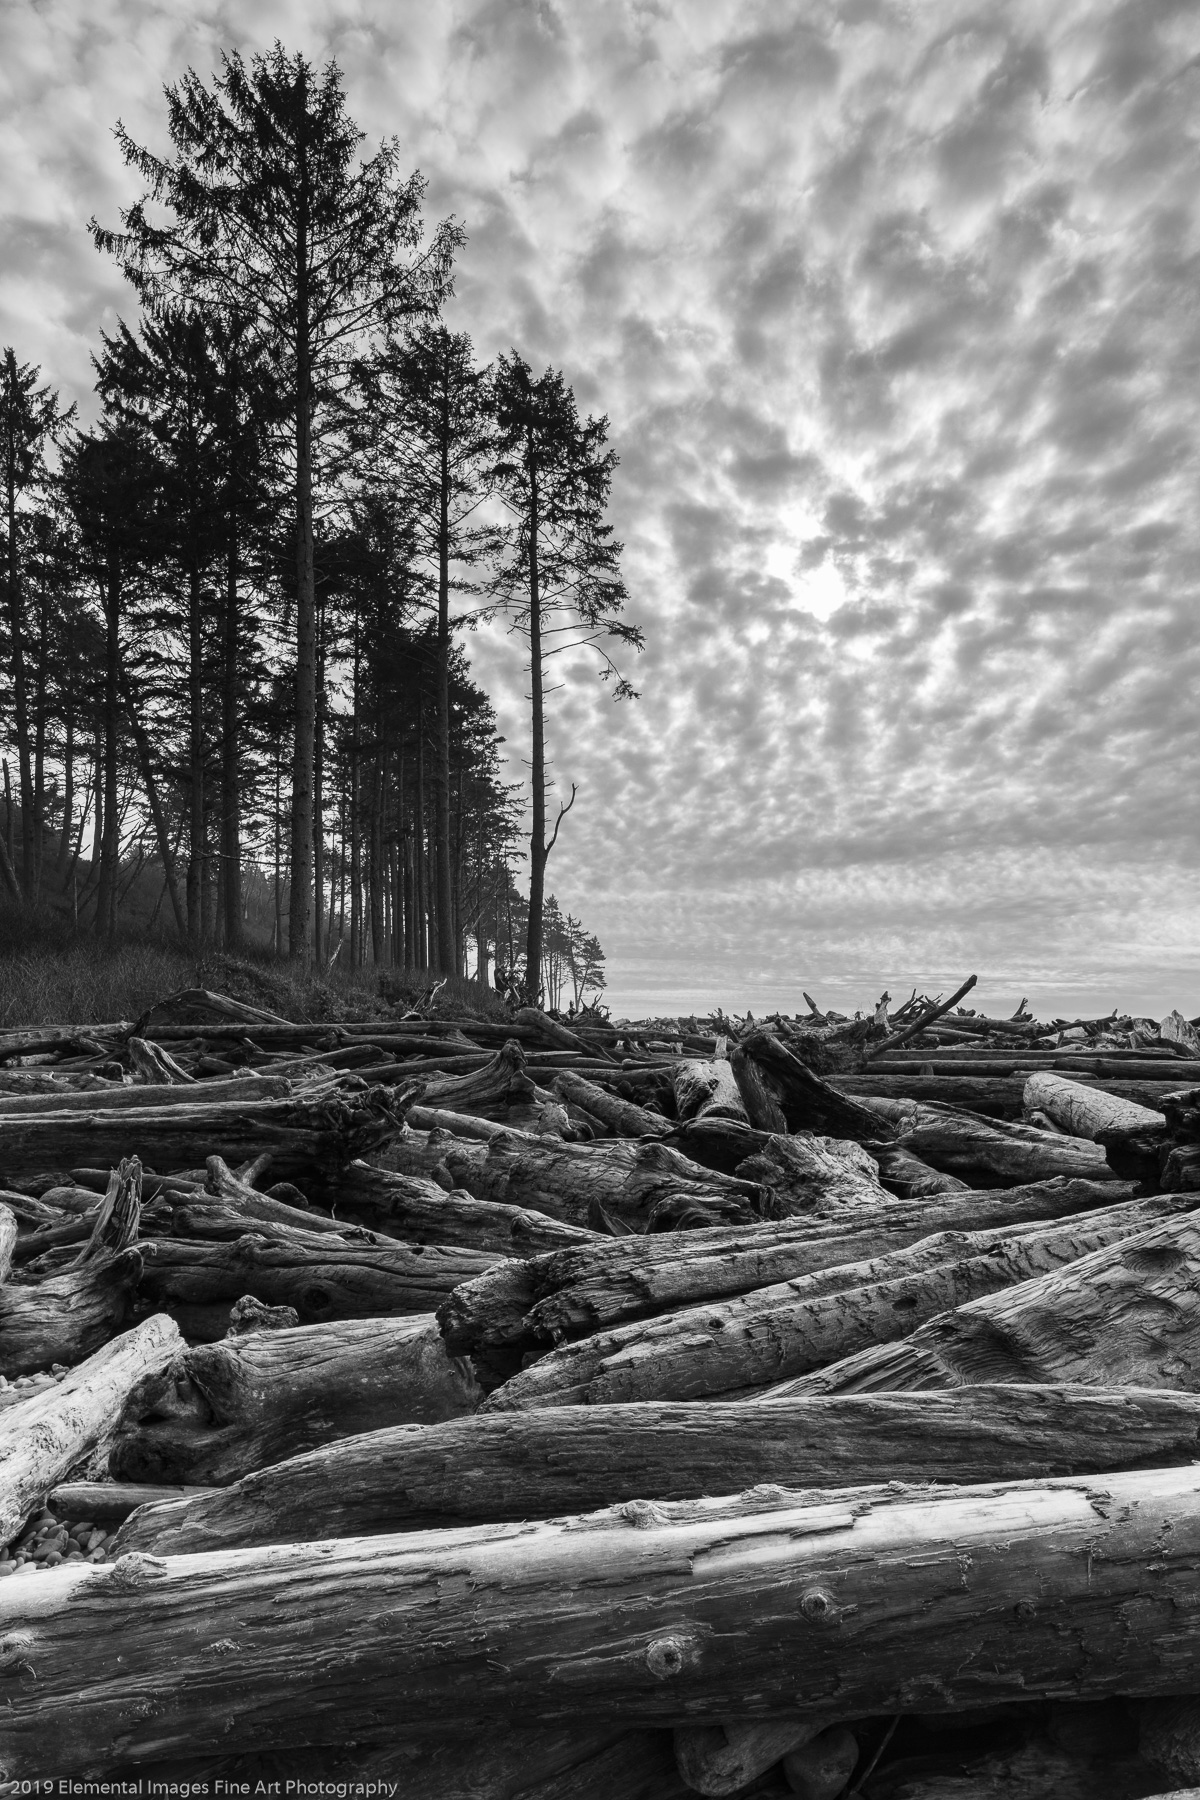 Sky and Timber | Olympic National Park | WA | USA - © 2019 Elemental Images Fine Art Photography - All Rights Reserved Worldwide